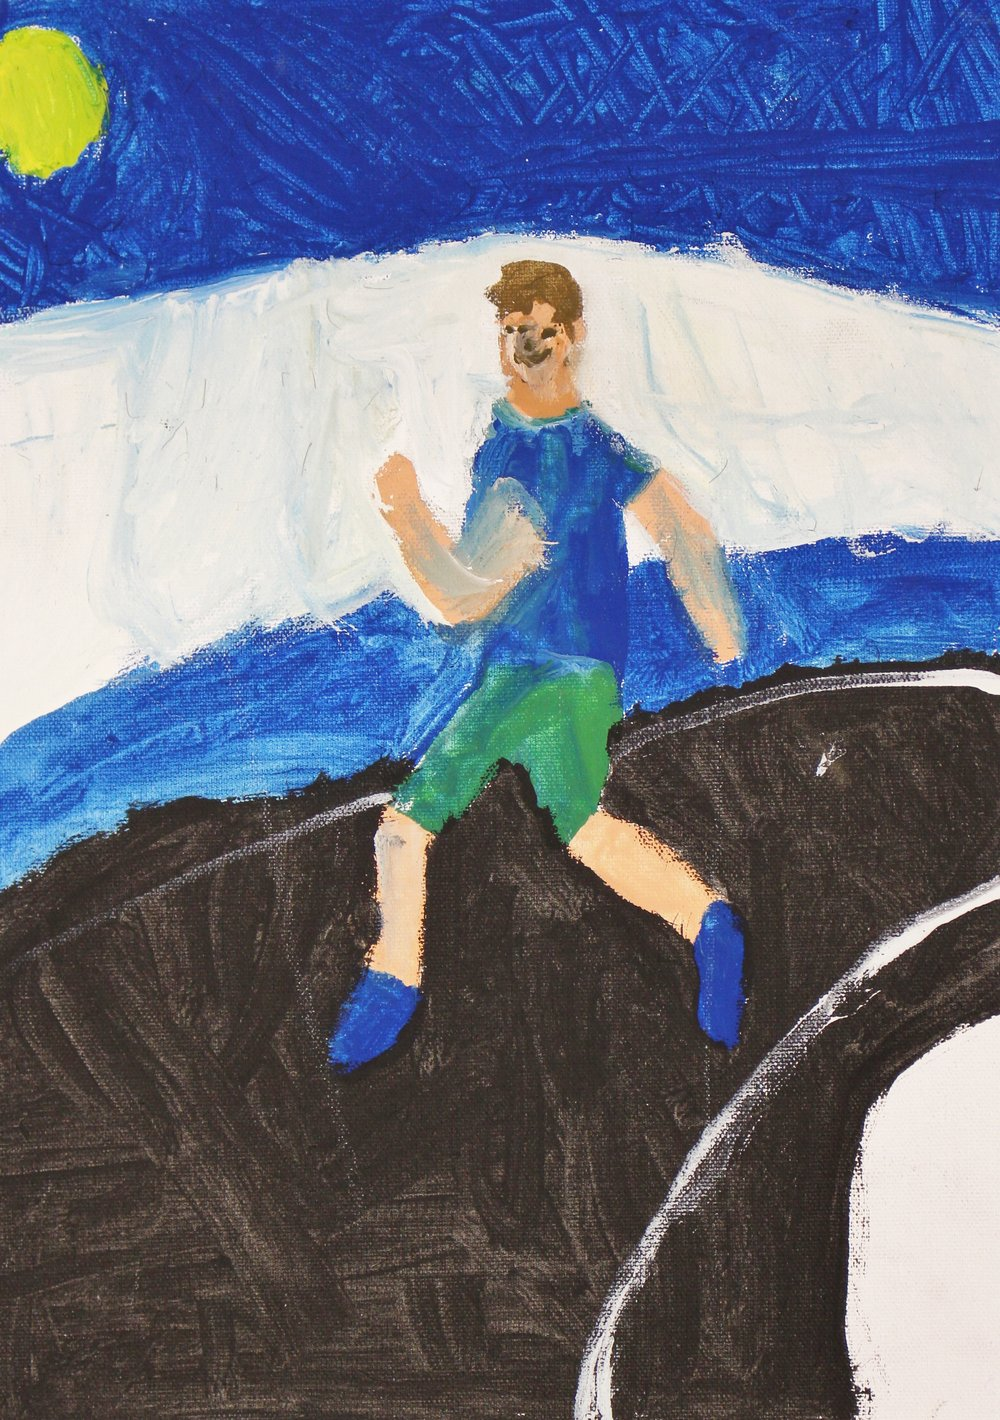 5th Grade: Owen Rathfon (Olympic Athlete in Motion)